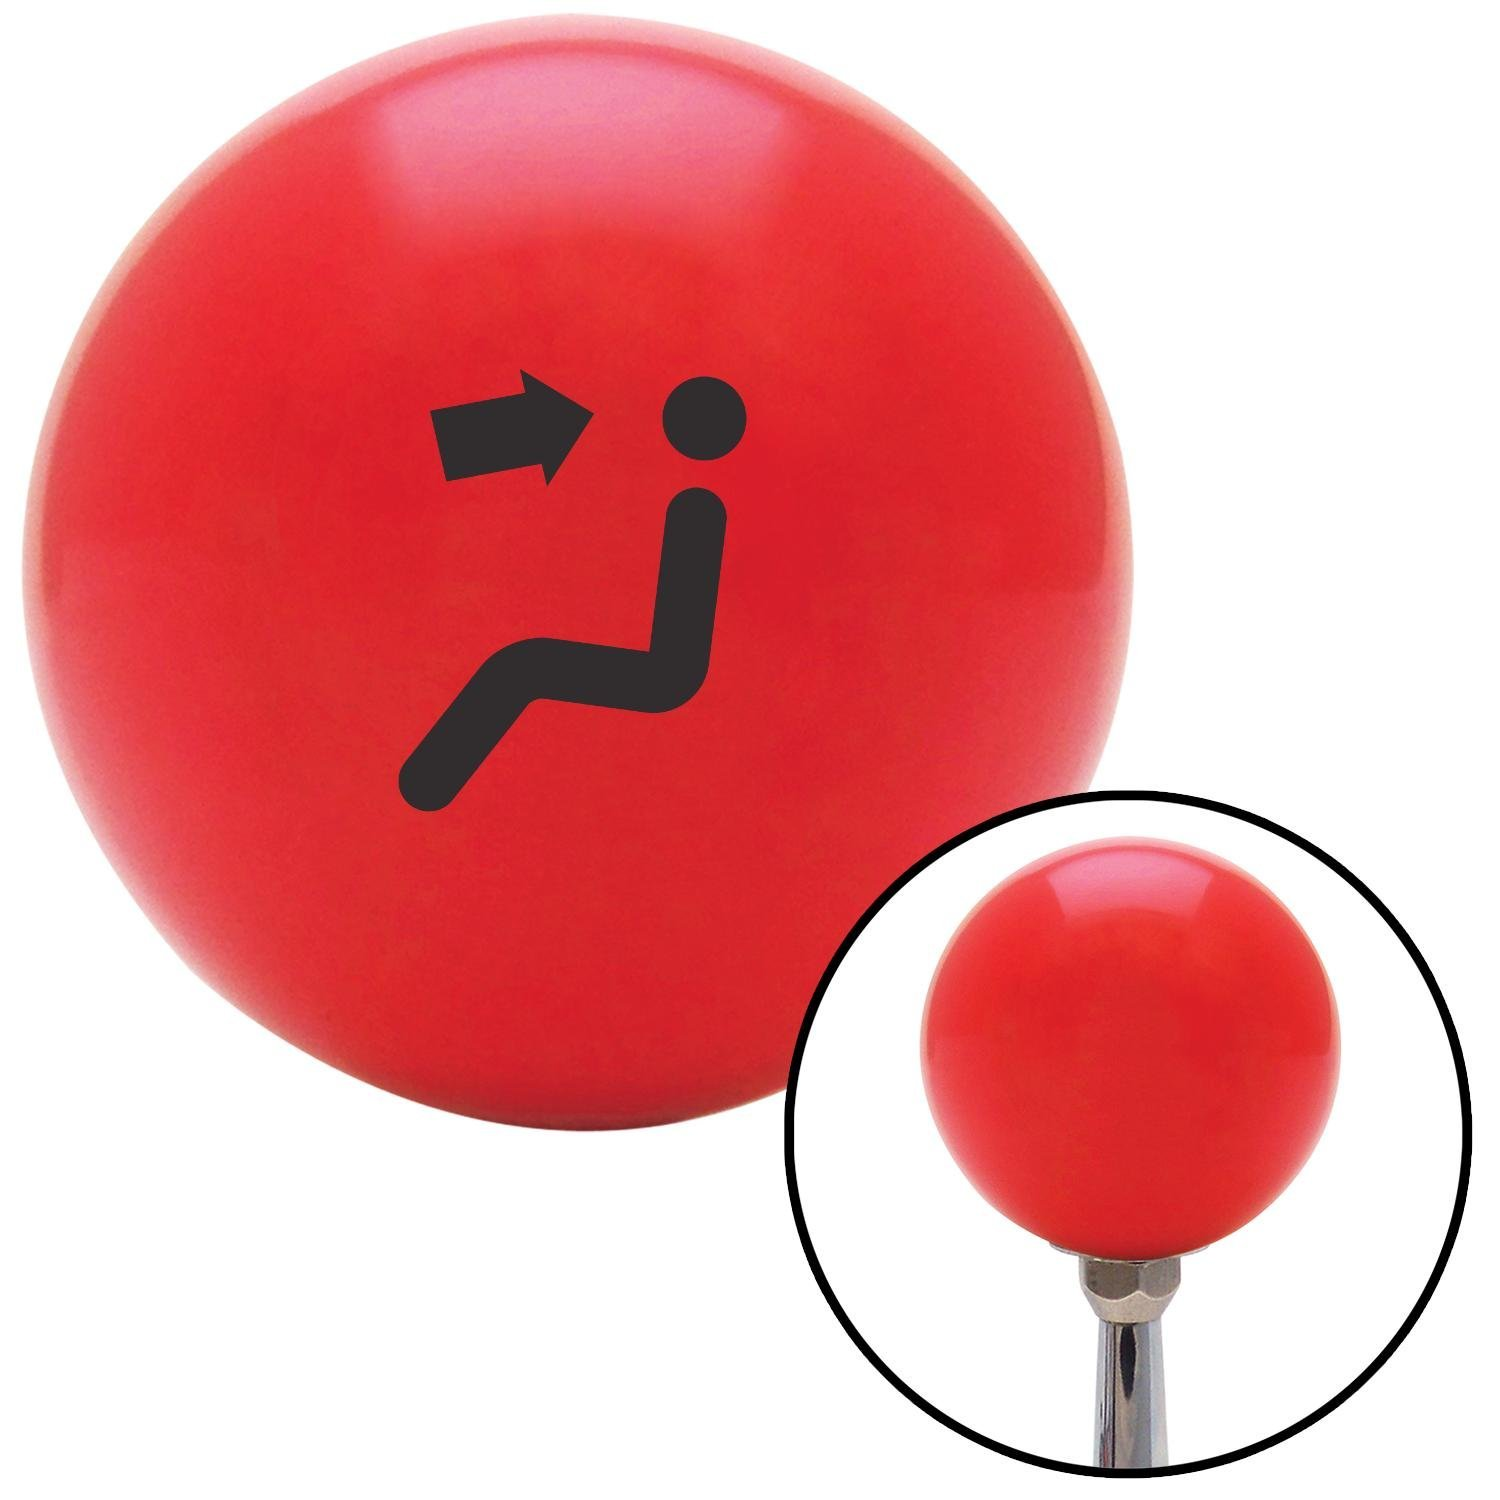 American Shifter 94235 Red Shift Knob with M16 x 1.5 Insert Black Automotive Air Face